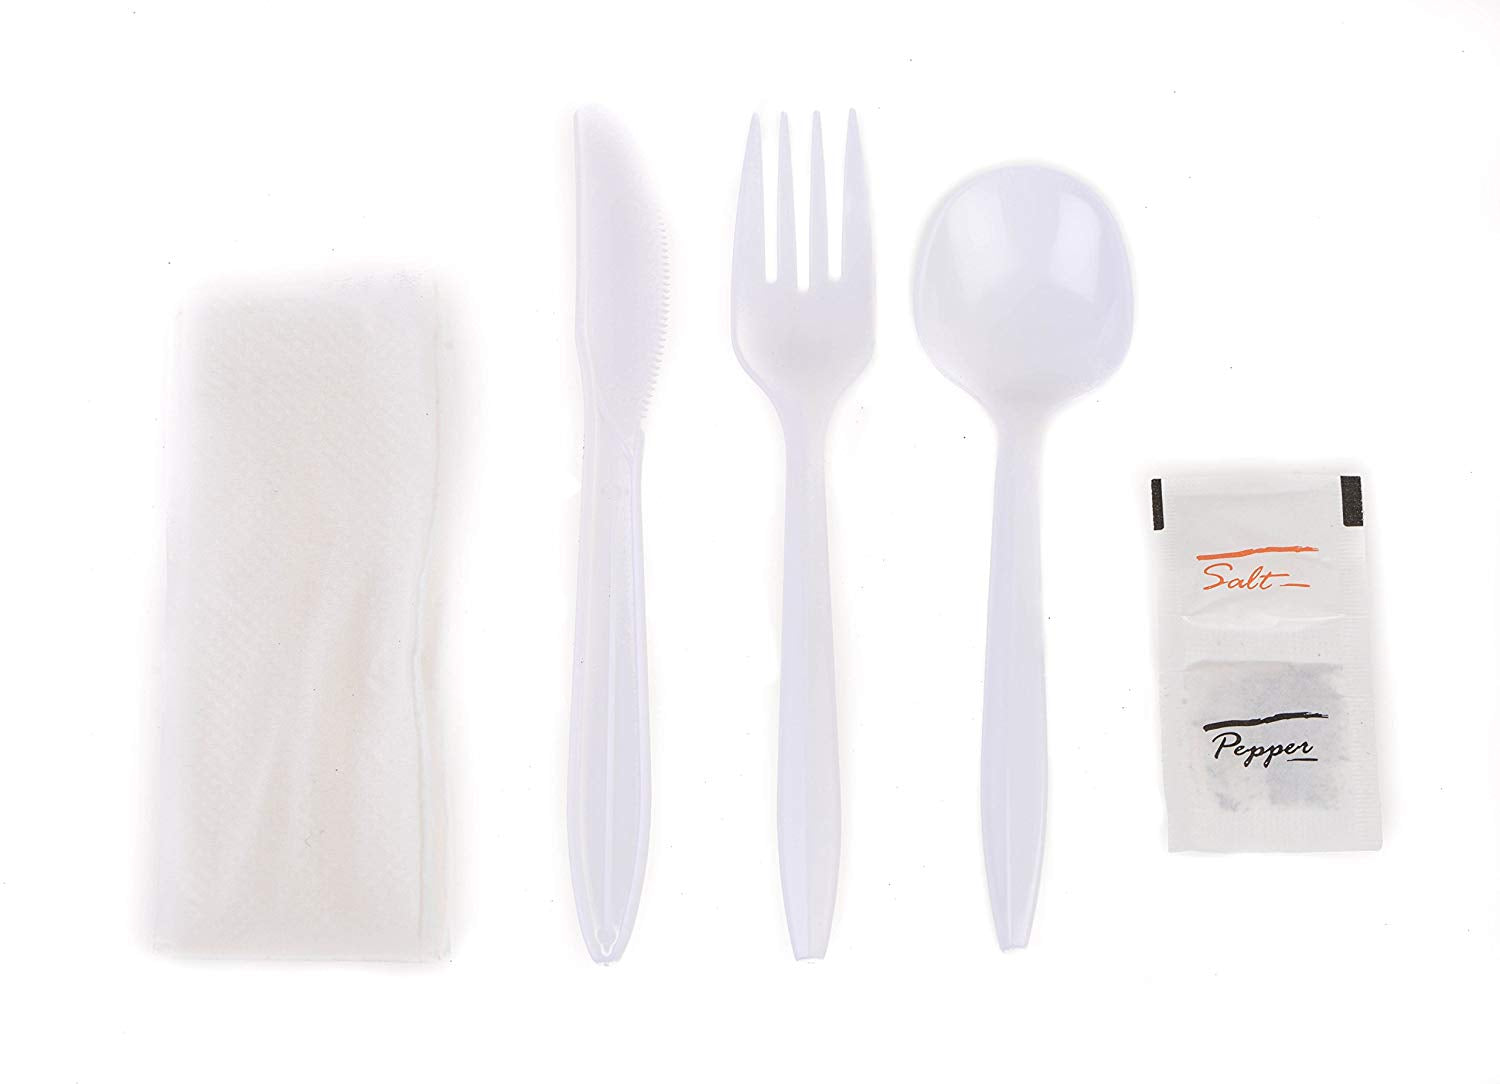 EcoQuality Wrapped Cutlery Kit 6 in 1 - Fork/Spoon/Knife/Napkin/Salt/Pepper - Disposable Cutlery Kit, Perfect for Lunch, Meal Prep, On The Go, to go, Catering and Restaurants (White, Pack of 50)